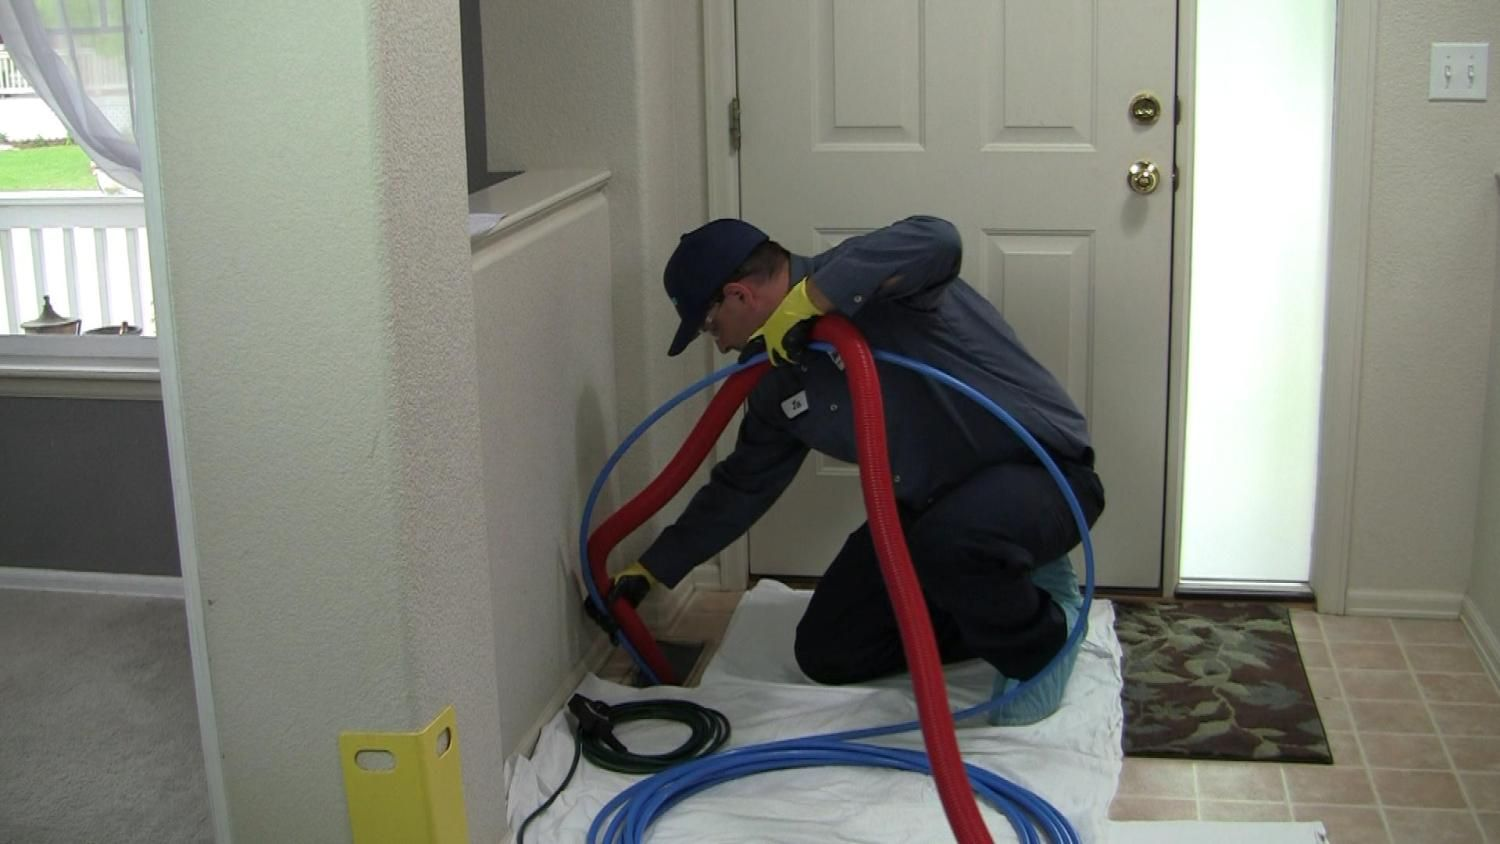 10 OFF on Air Duct Cleaning Air Duct Cleaning 4Less